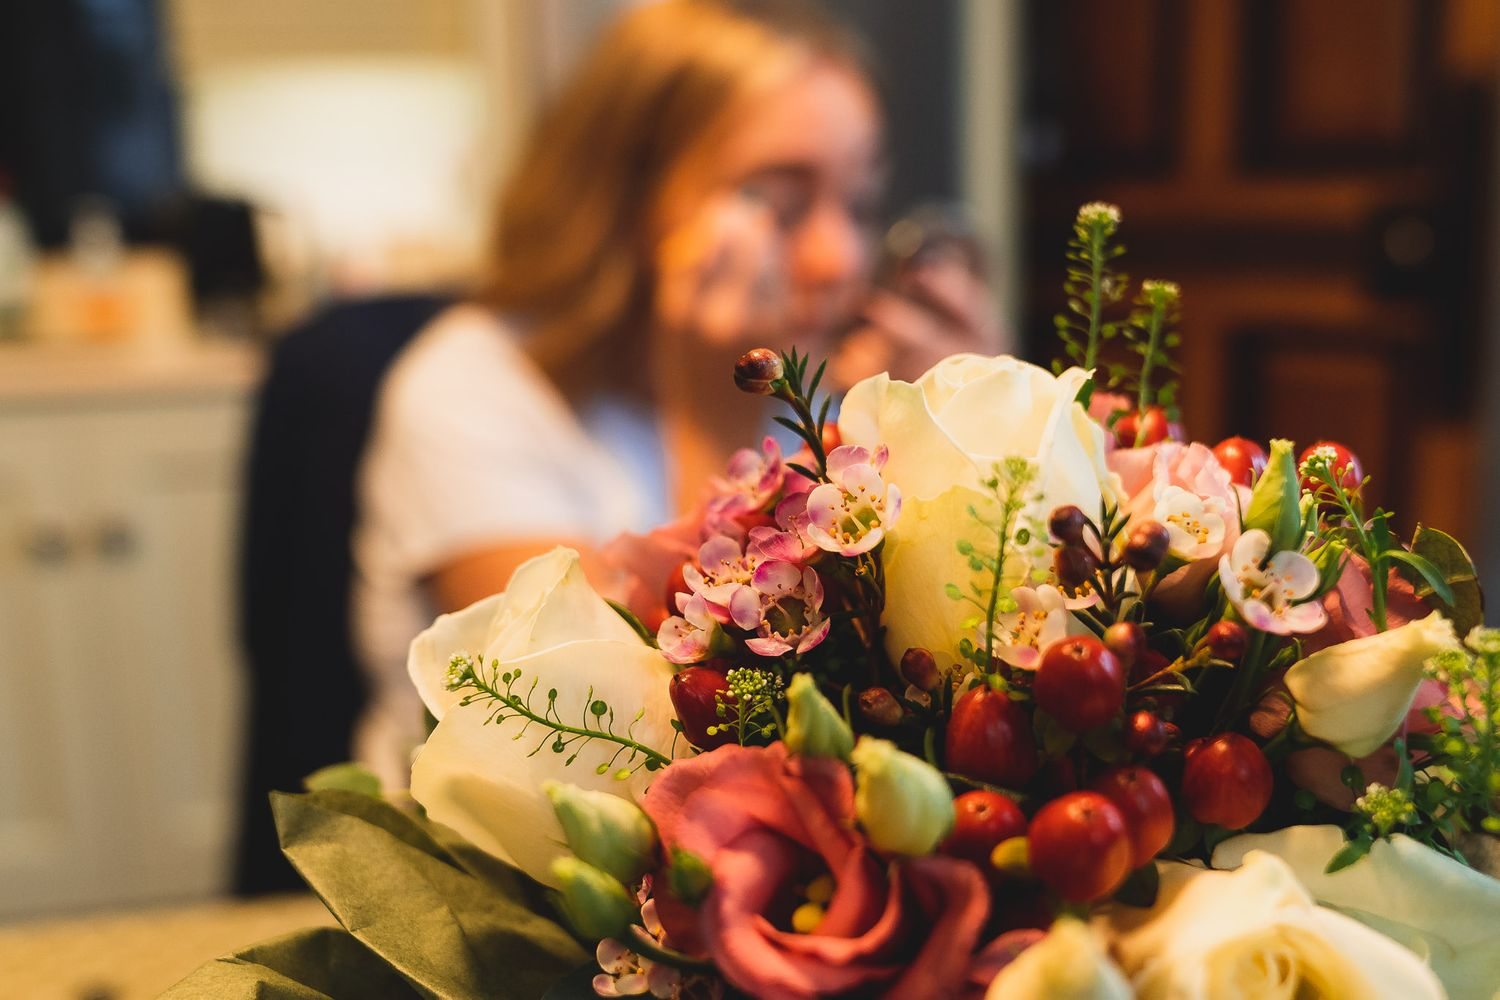 Wedding bouquet is in focus in the foreground, bridesmaid does her makeup in the background. Salisbury wedding prep.